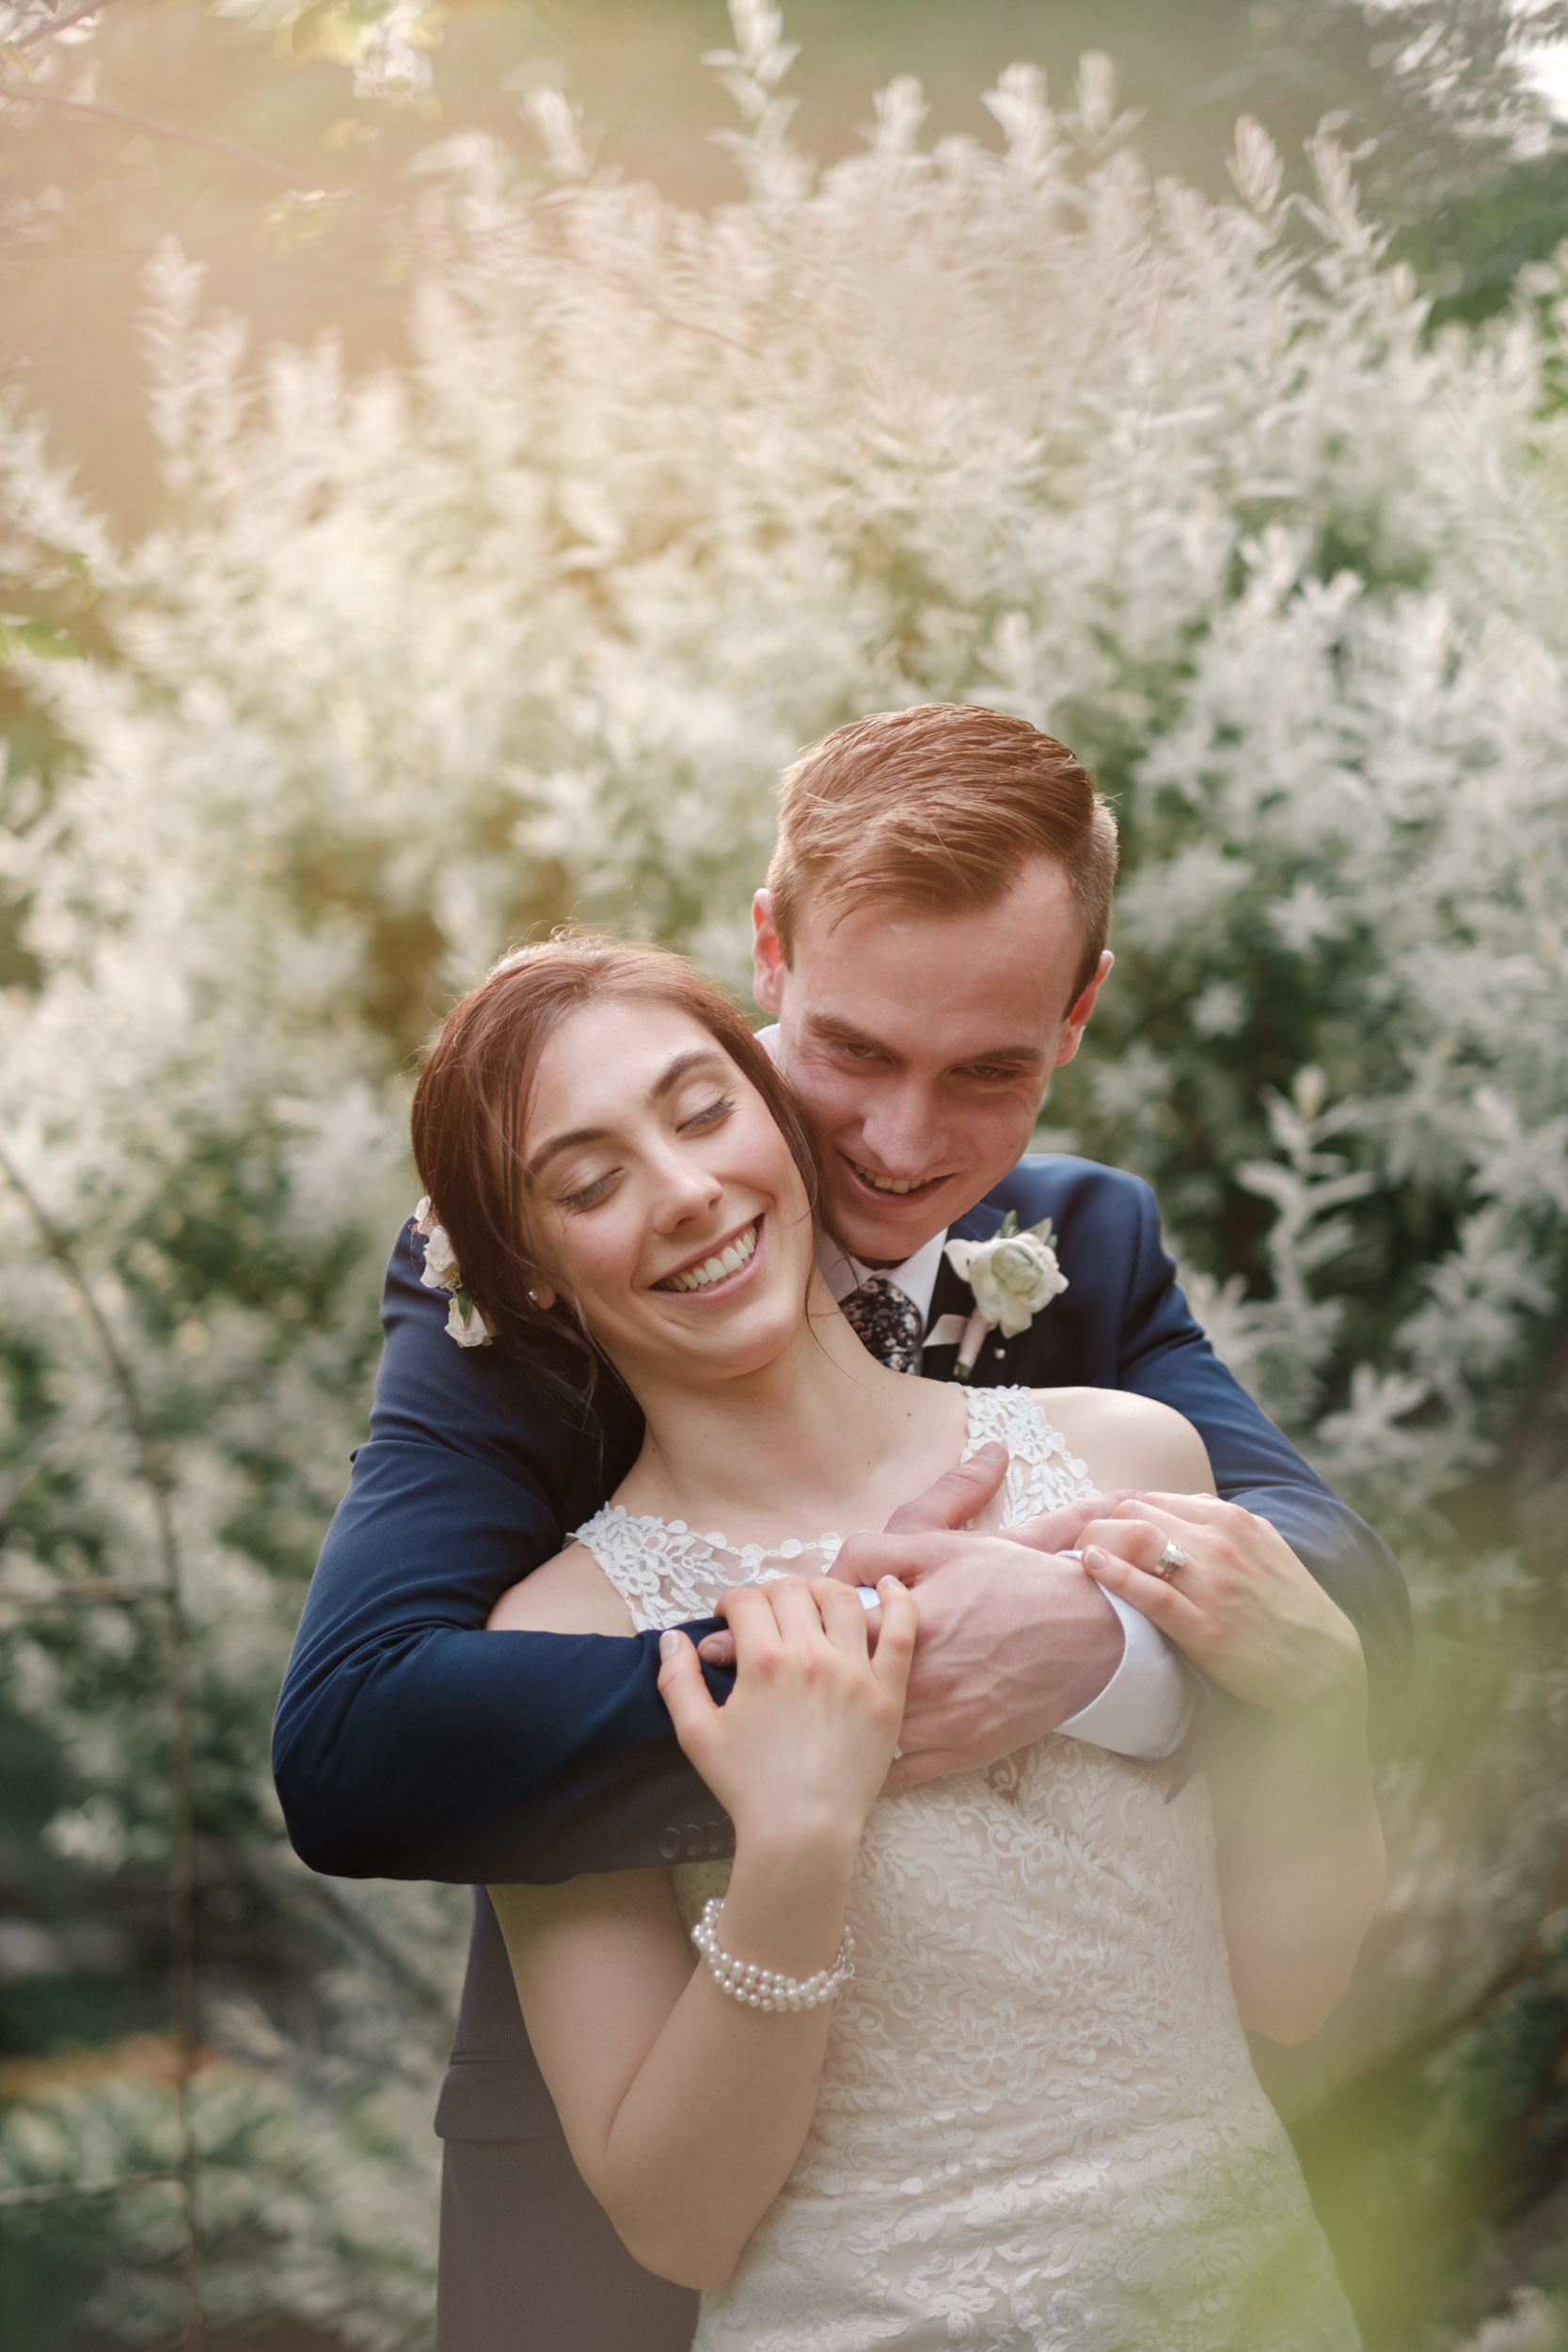 rockford wedding gardens of woodstock couple embrace and laugh blue suite flower crown